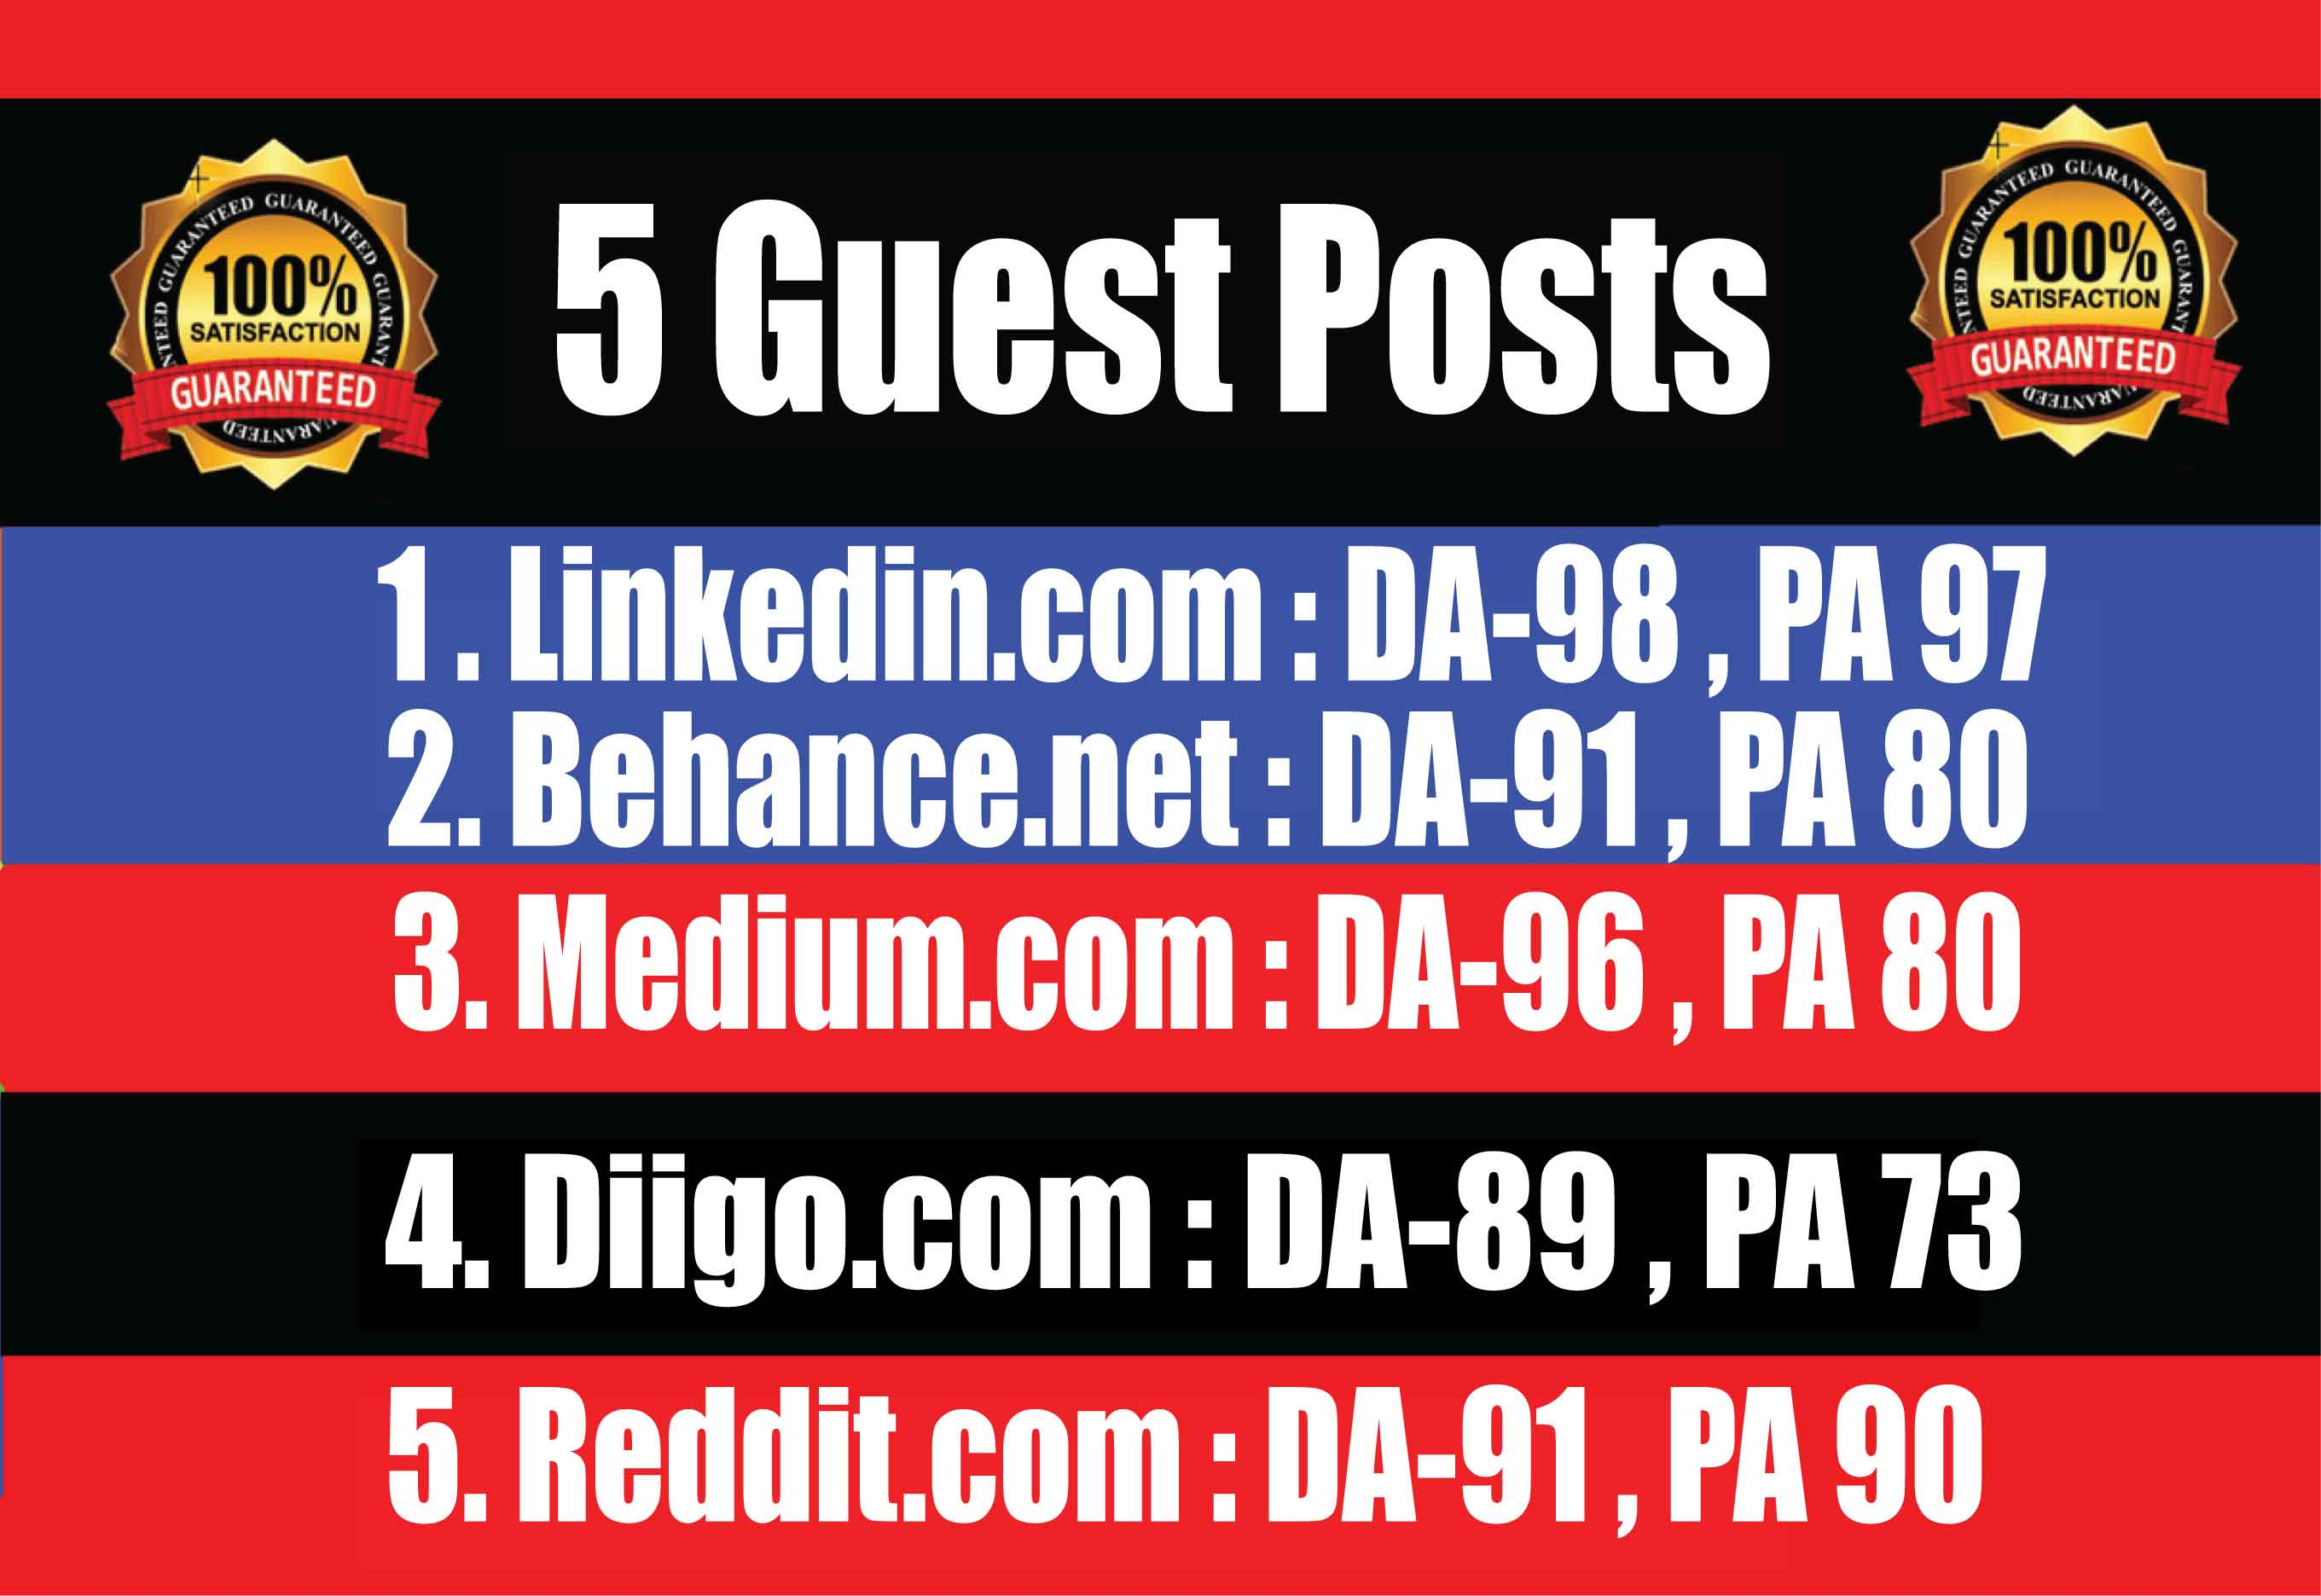 Publish 5 Guest Posts on Linkedin,  Behance,  Medium,  Diigo,  Reddit - High DA-90+ PA Blogs